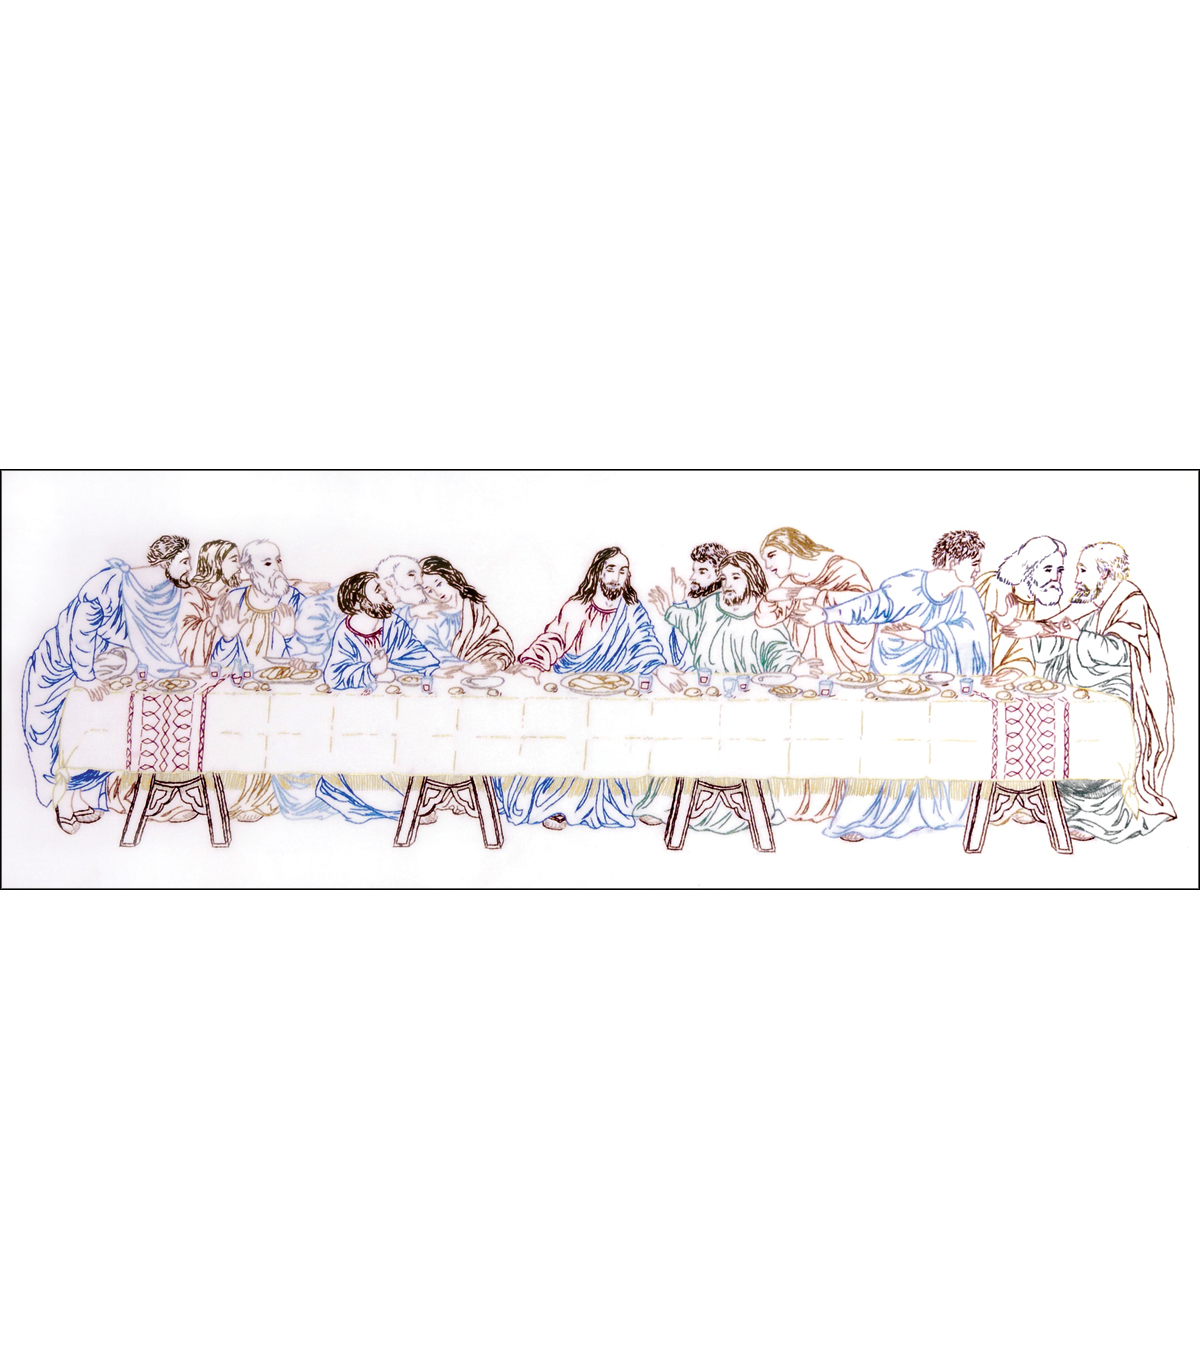 Tobin Last Supper Stamped Embroidery Kit